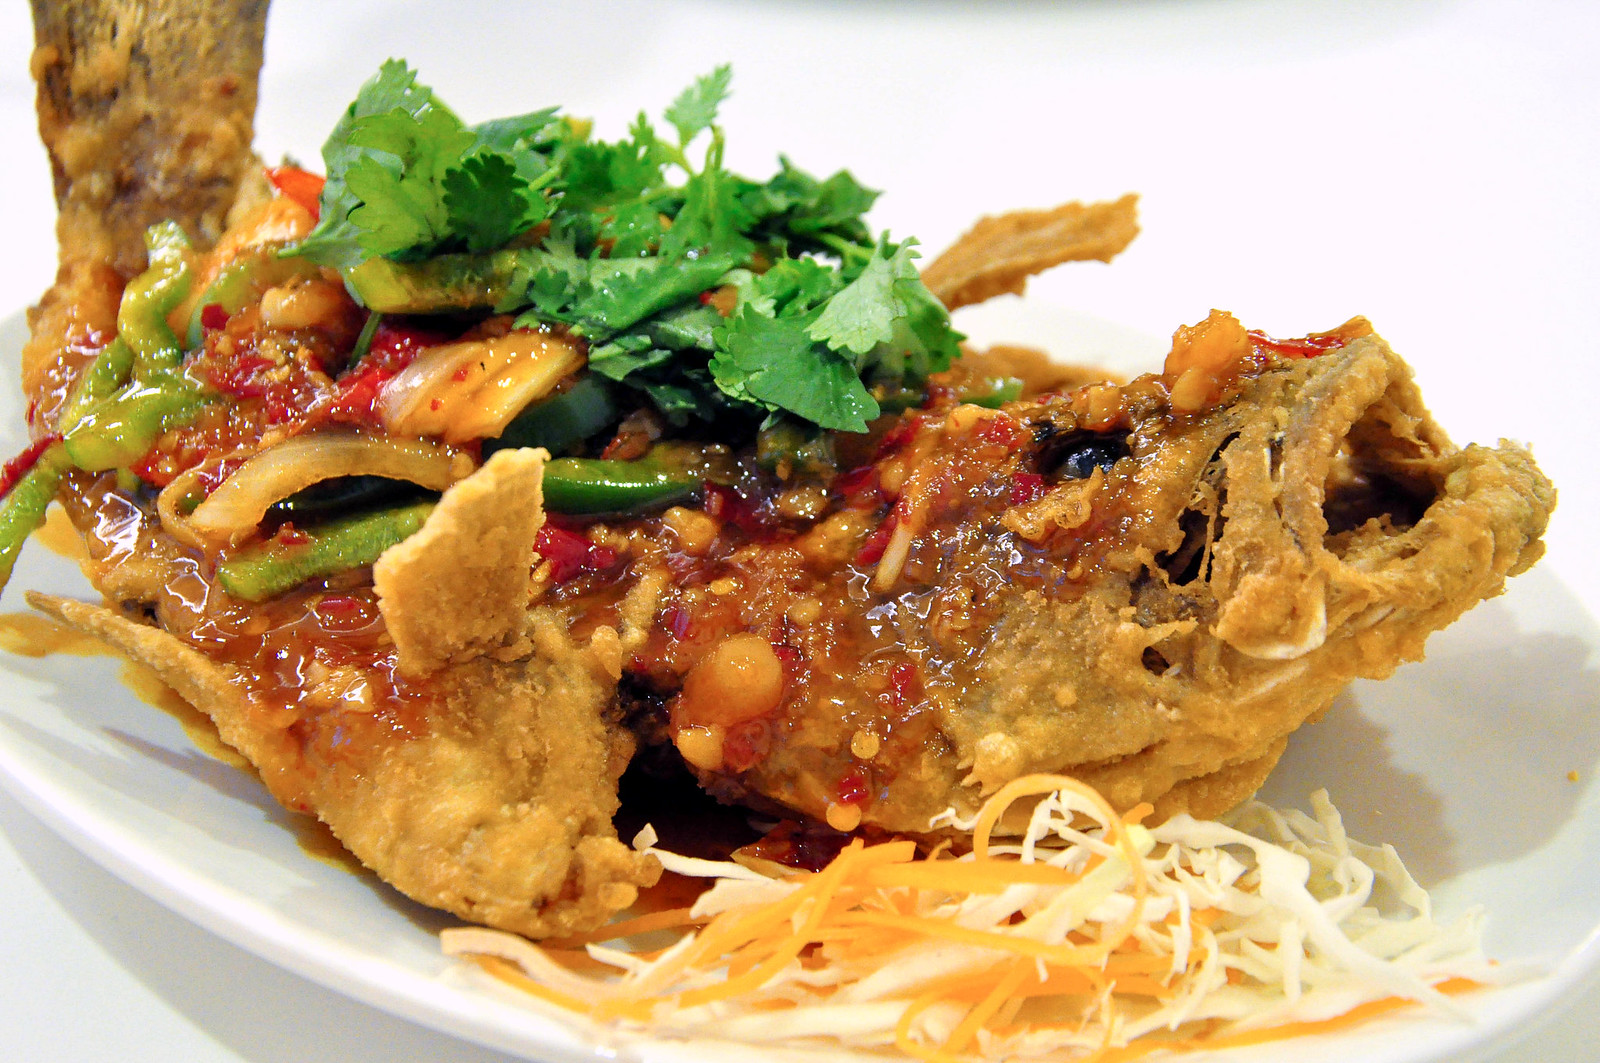 Magic Wok - Thai Style Fried Fish